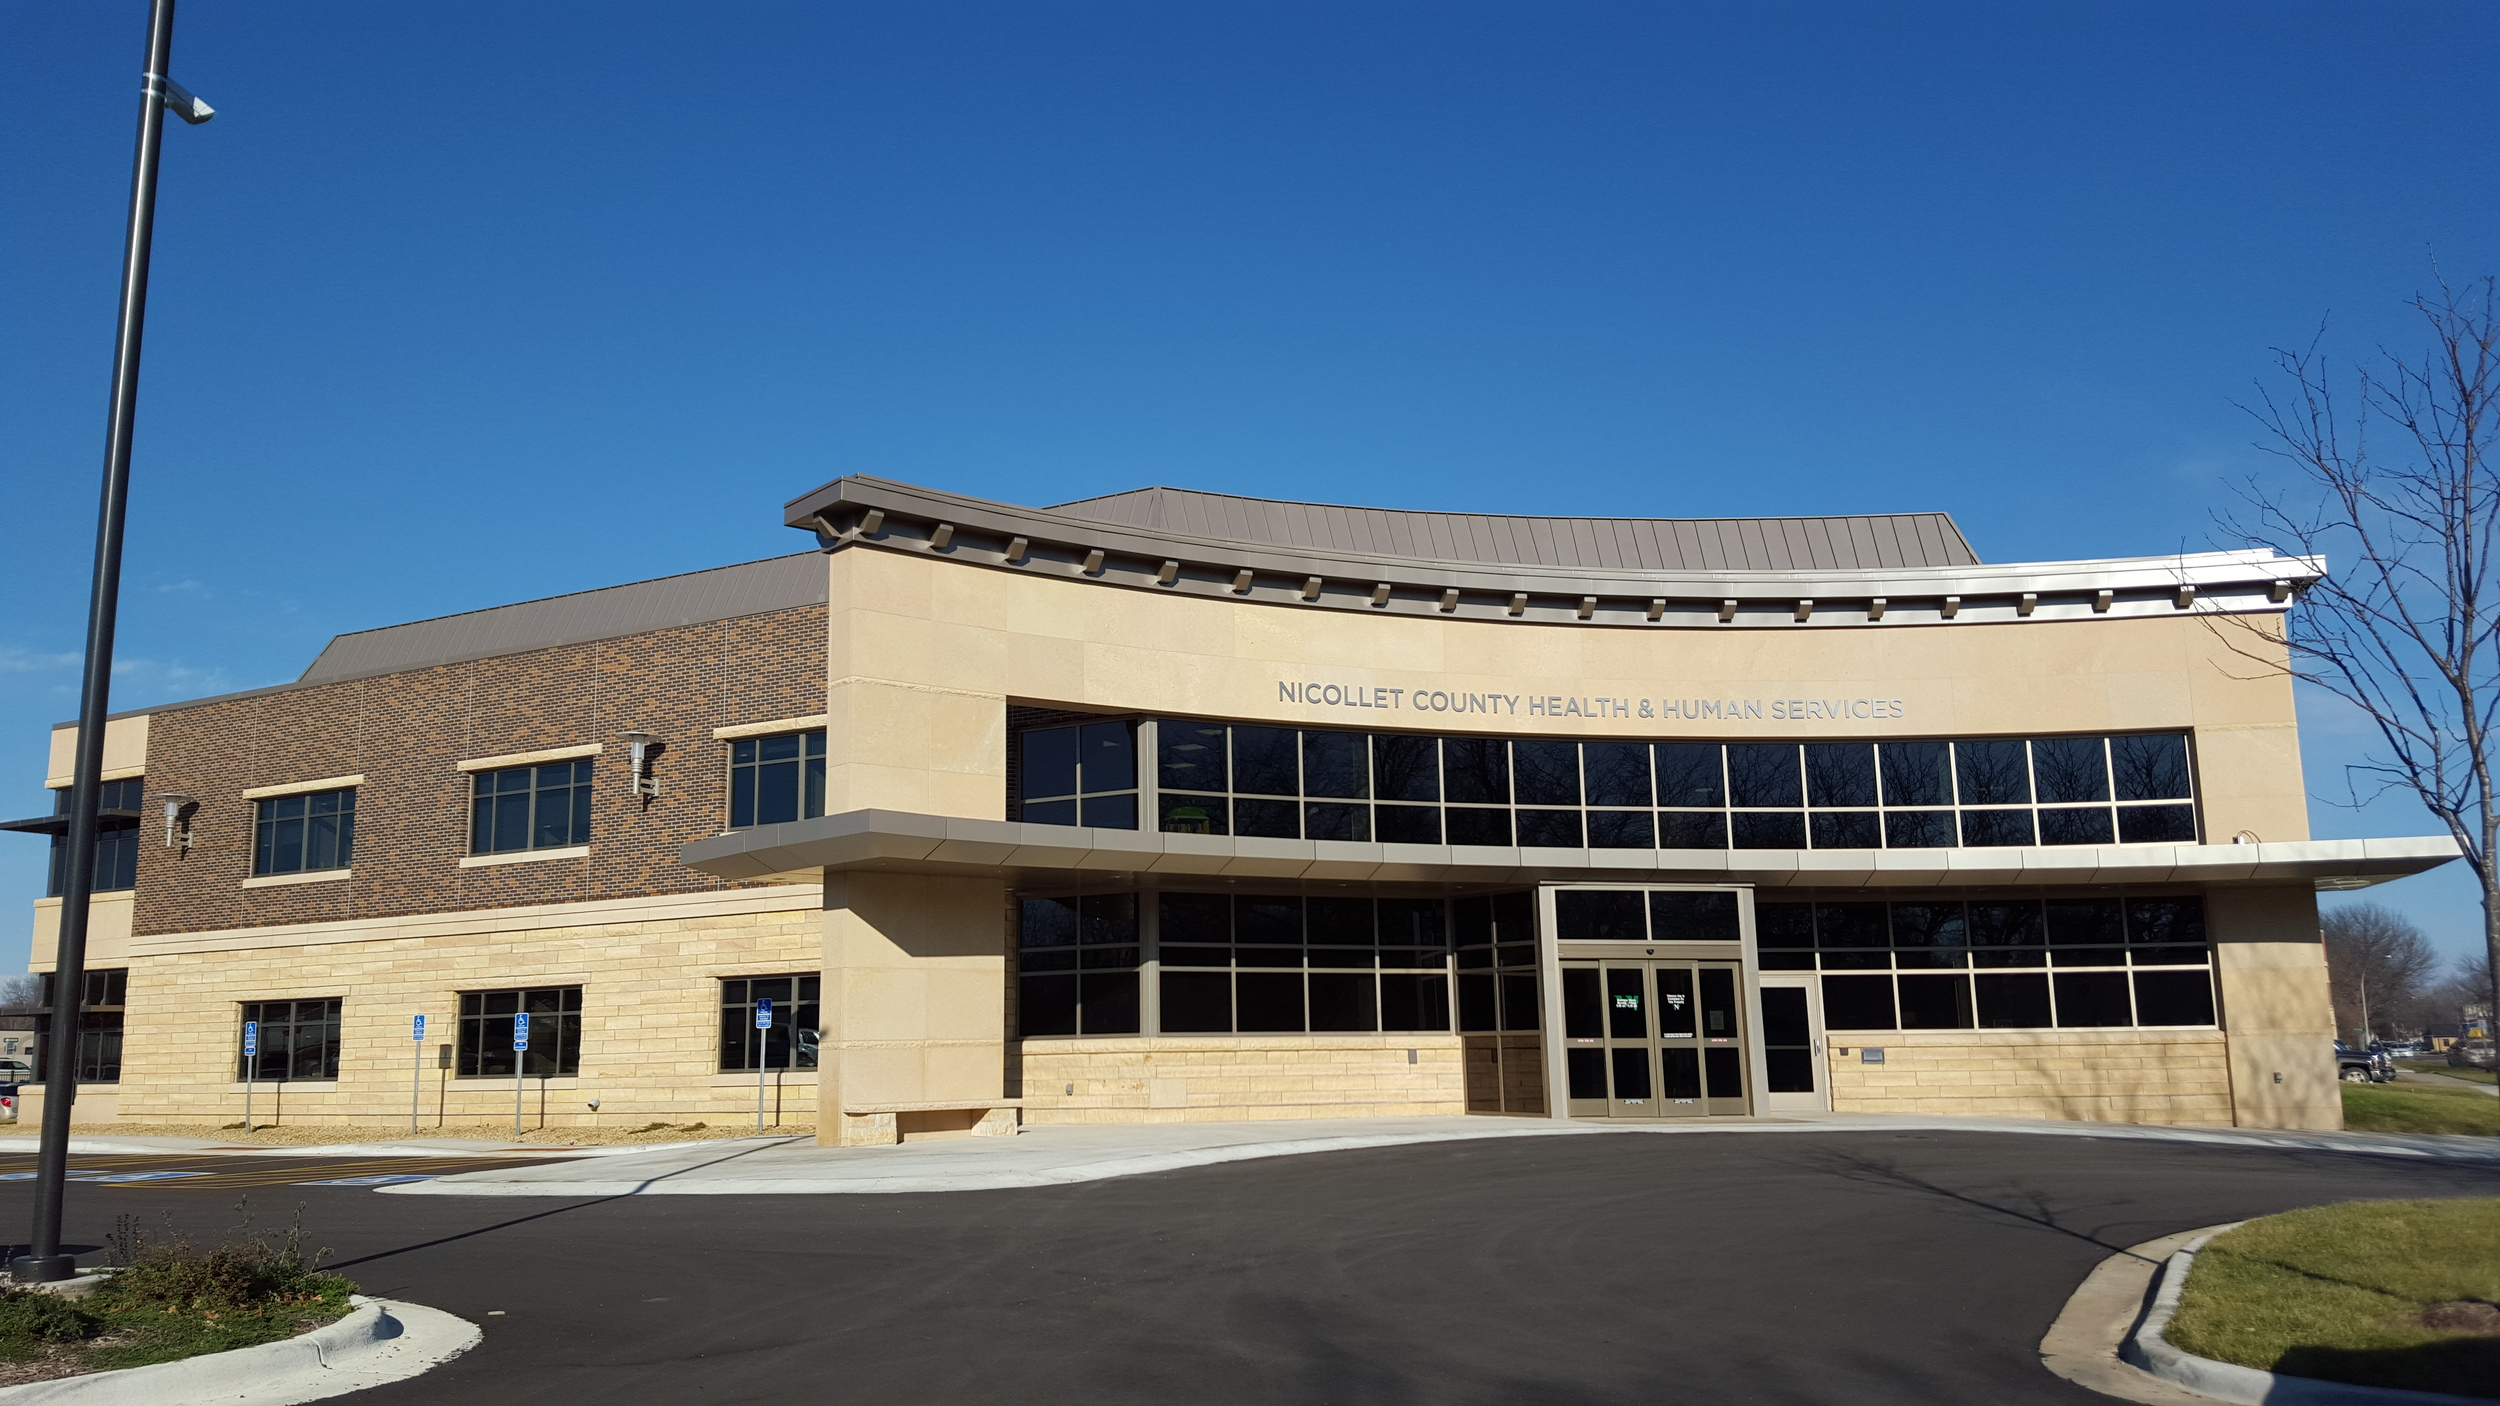 Nicollet County Health & Human Services